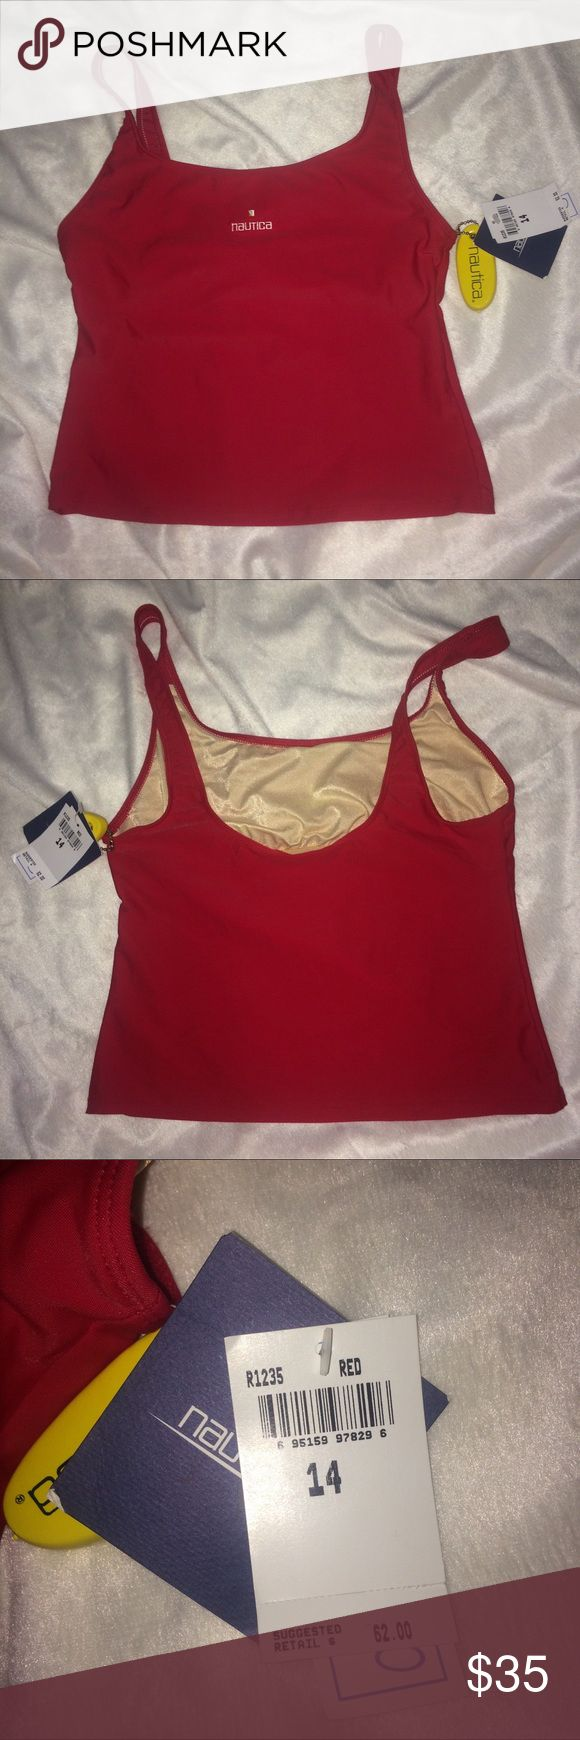 NWT Nautica Tankini Top NWT Red Nautica Tankini top only. Retails for $62 Nautica Swim